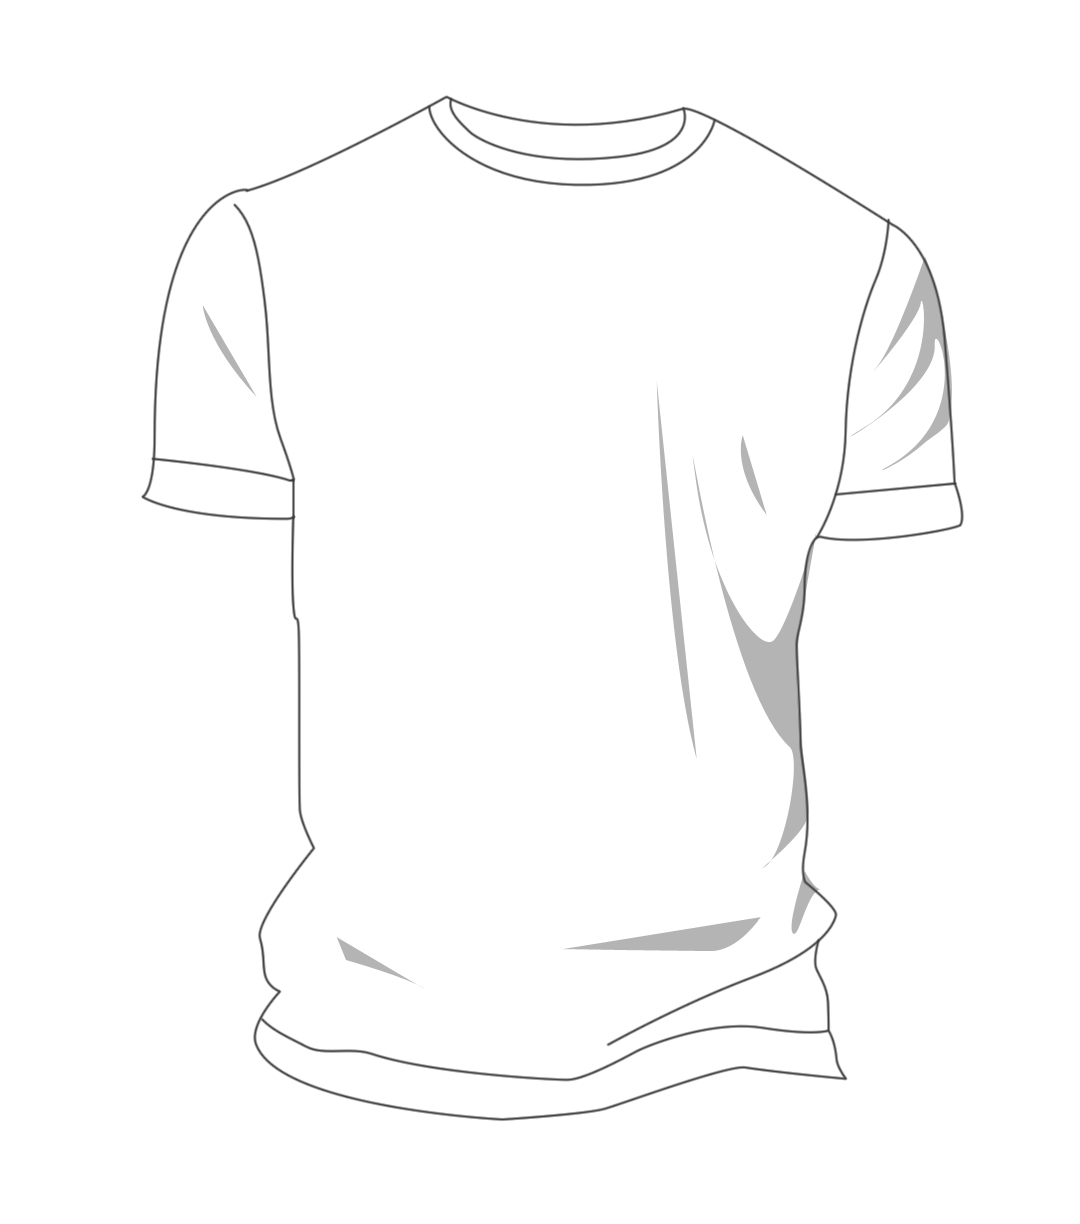 tshirt design template - Romeo.landinez.co